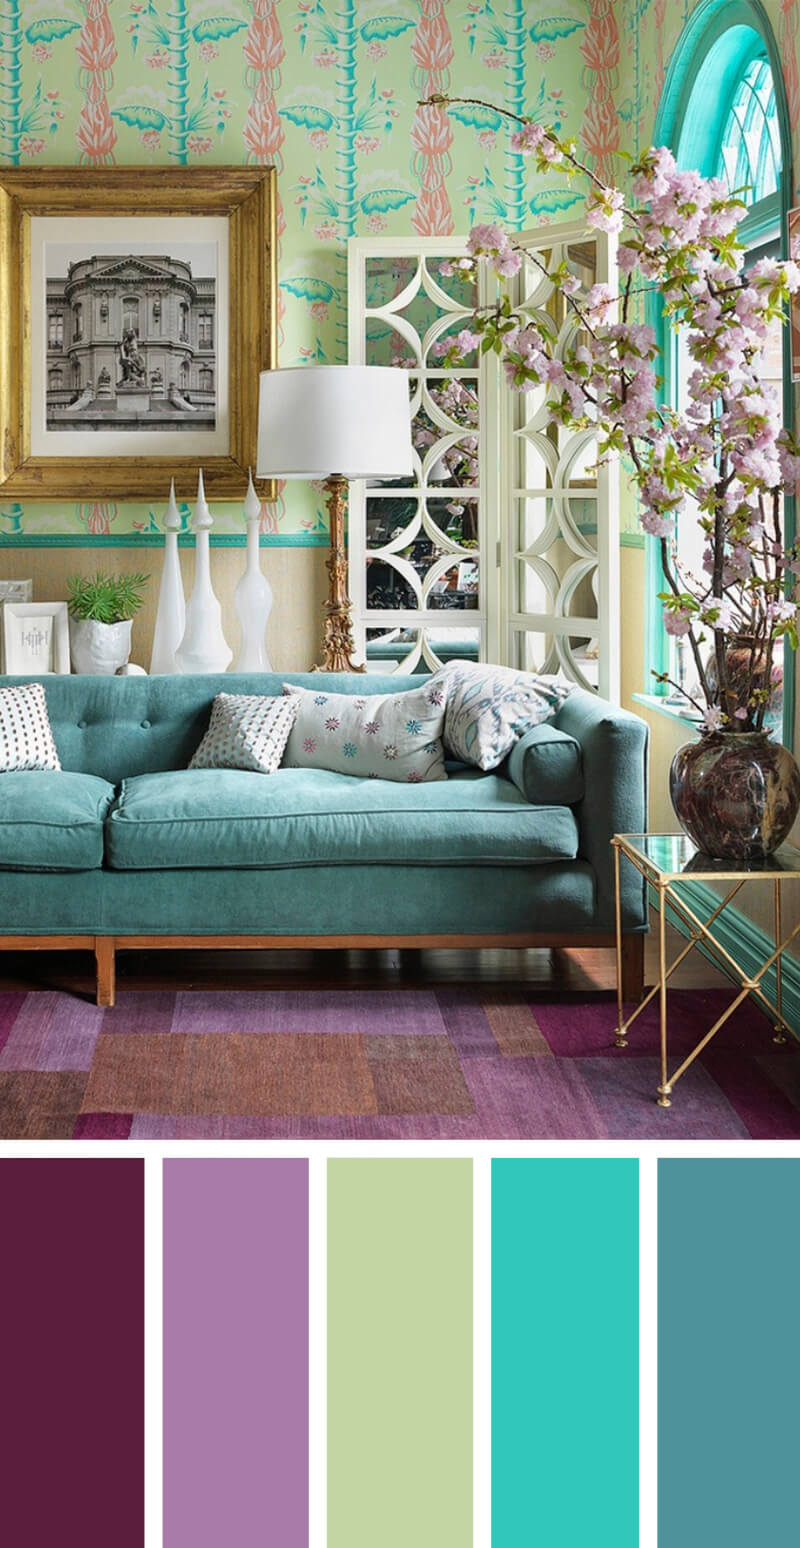 7 Best Living Room Color Scheme Ideas and Designs for 2017 on Colourful Living Room  id=33247